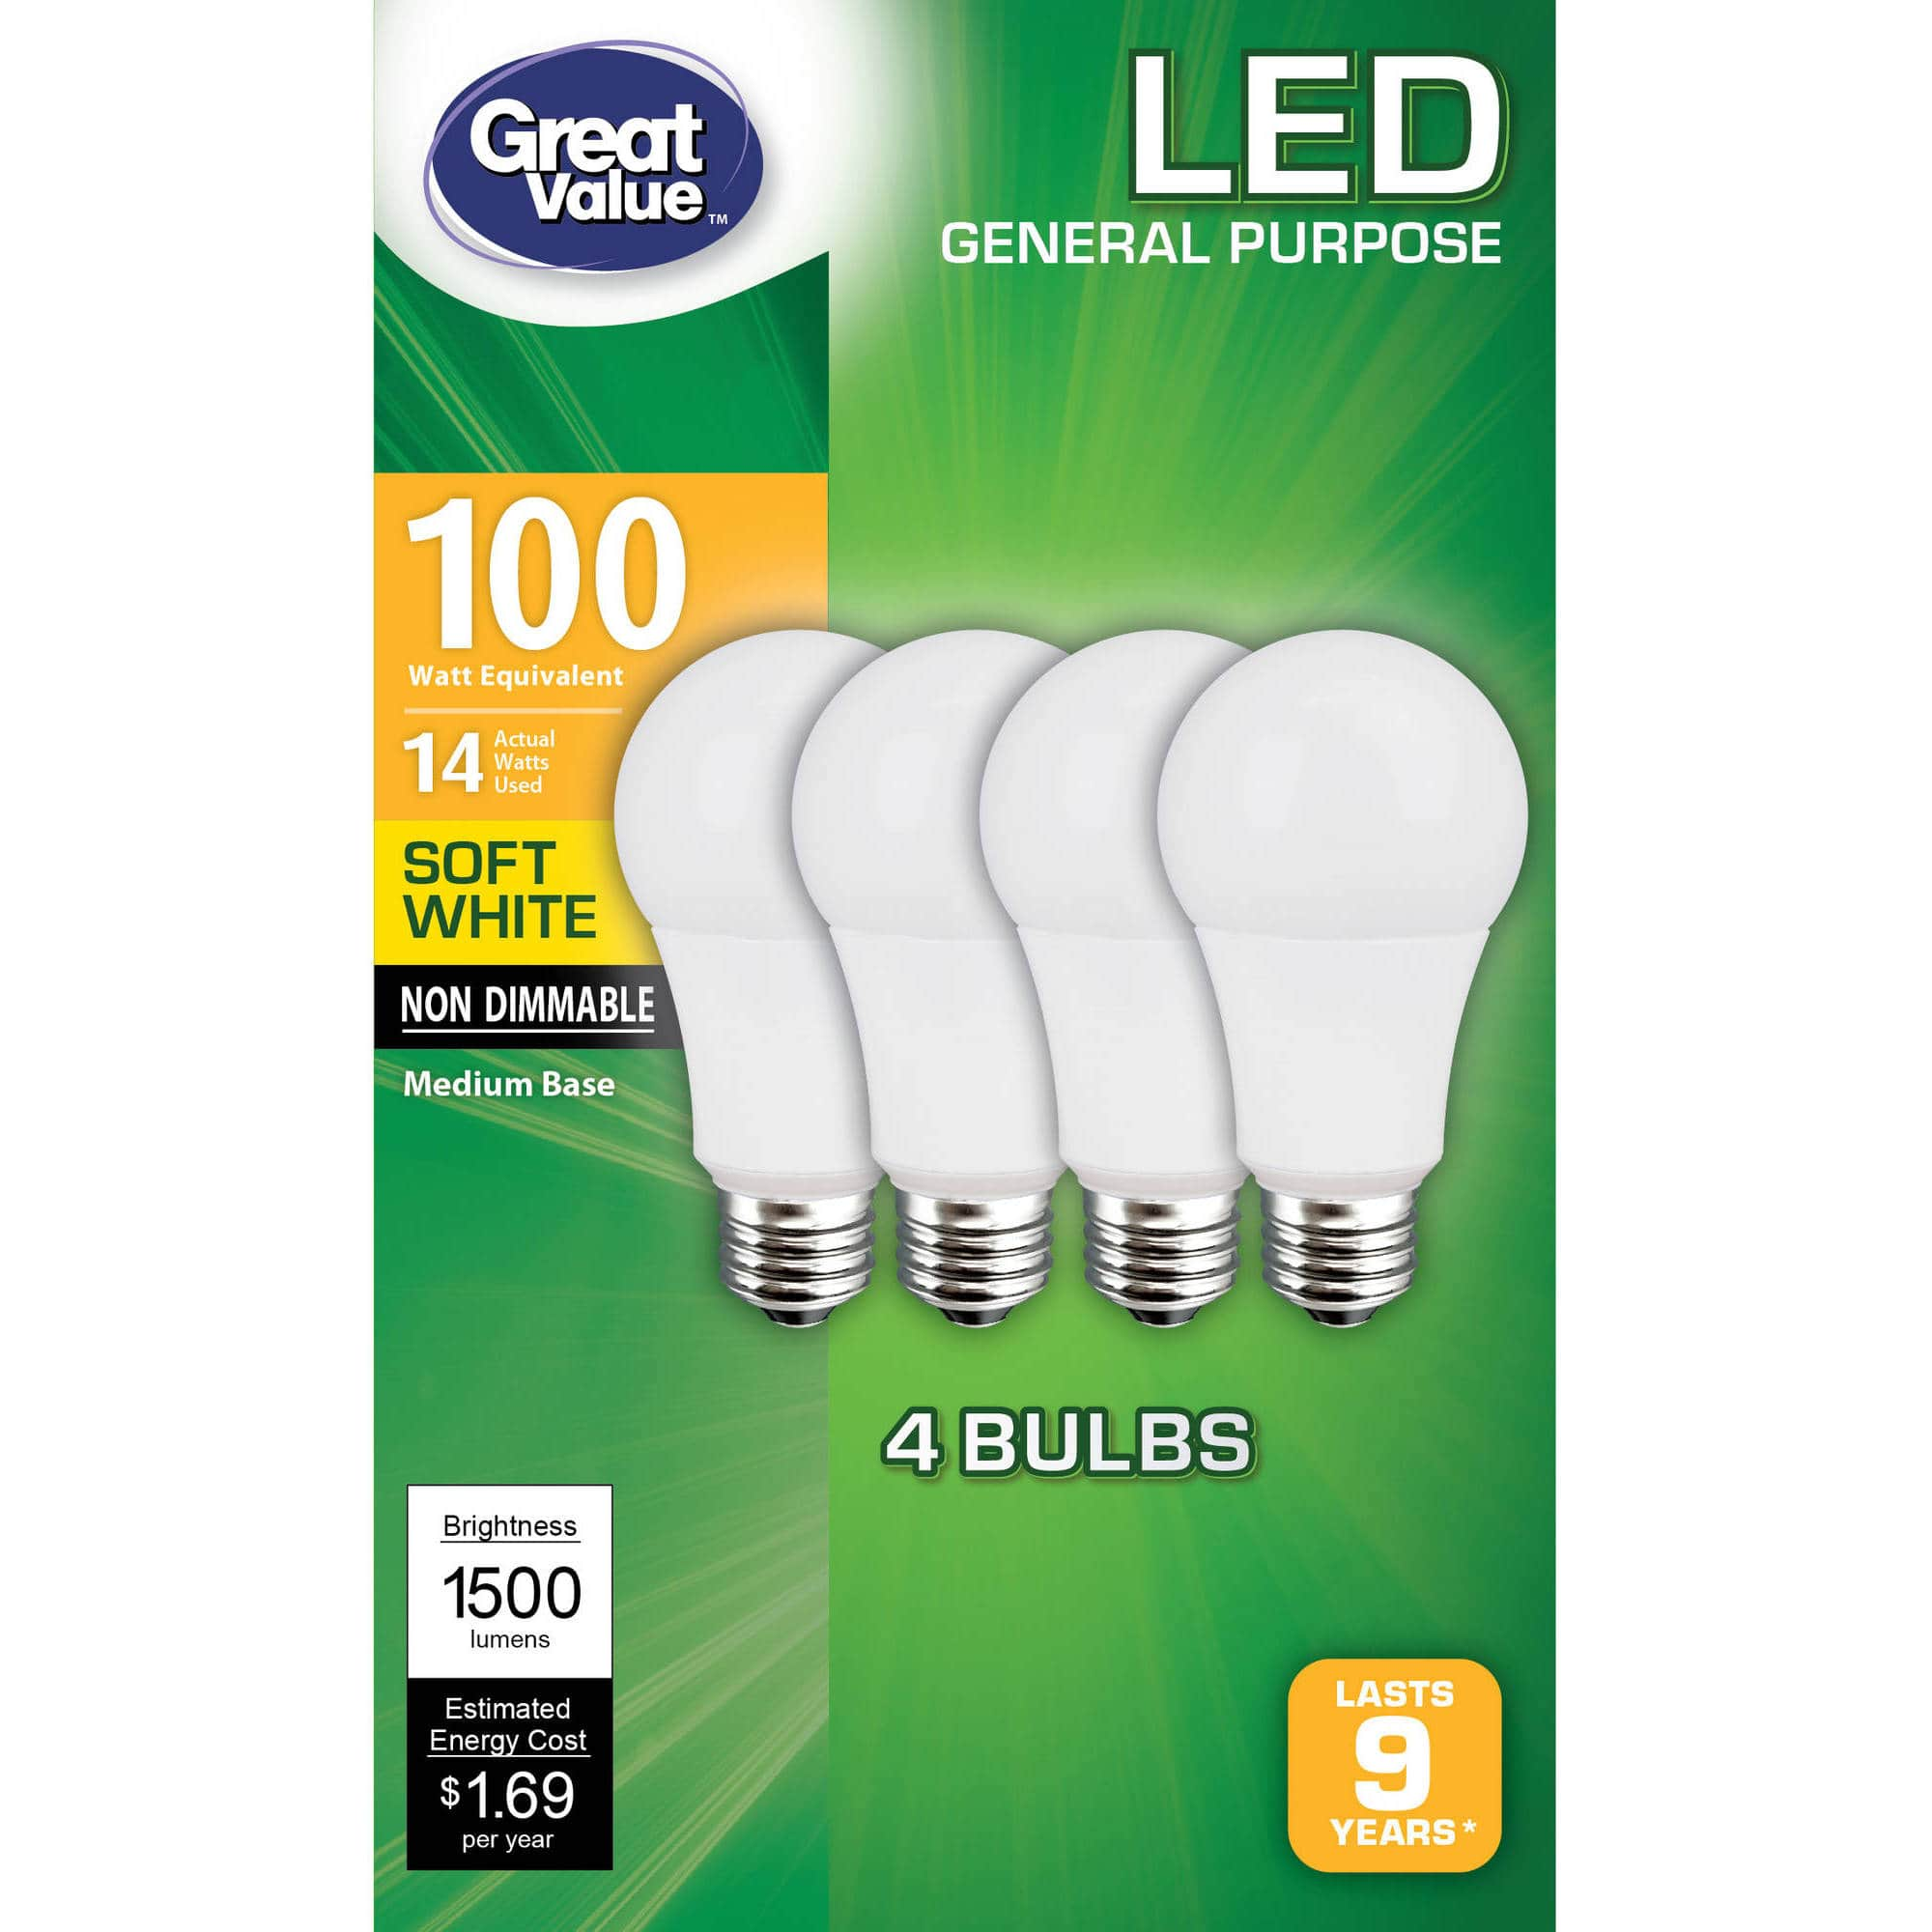 Walmart.com - 4pk 100W LED Light Bulbs Soft White - $7.97 Free store pickup or FS +$35